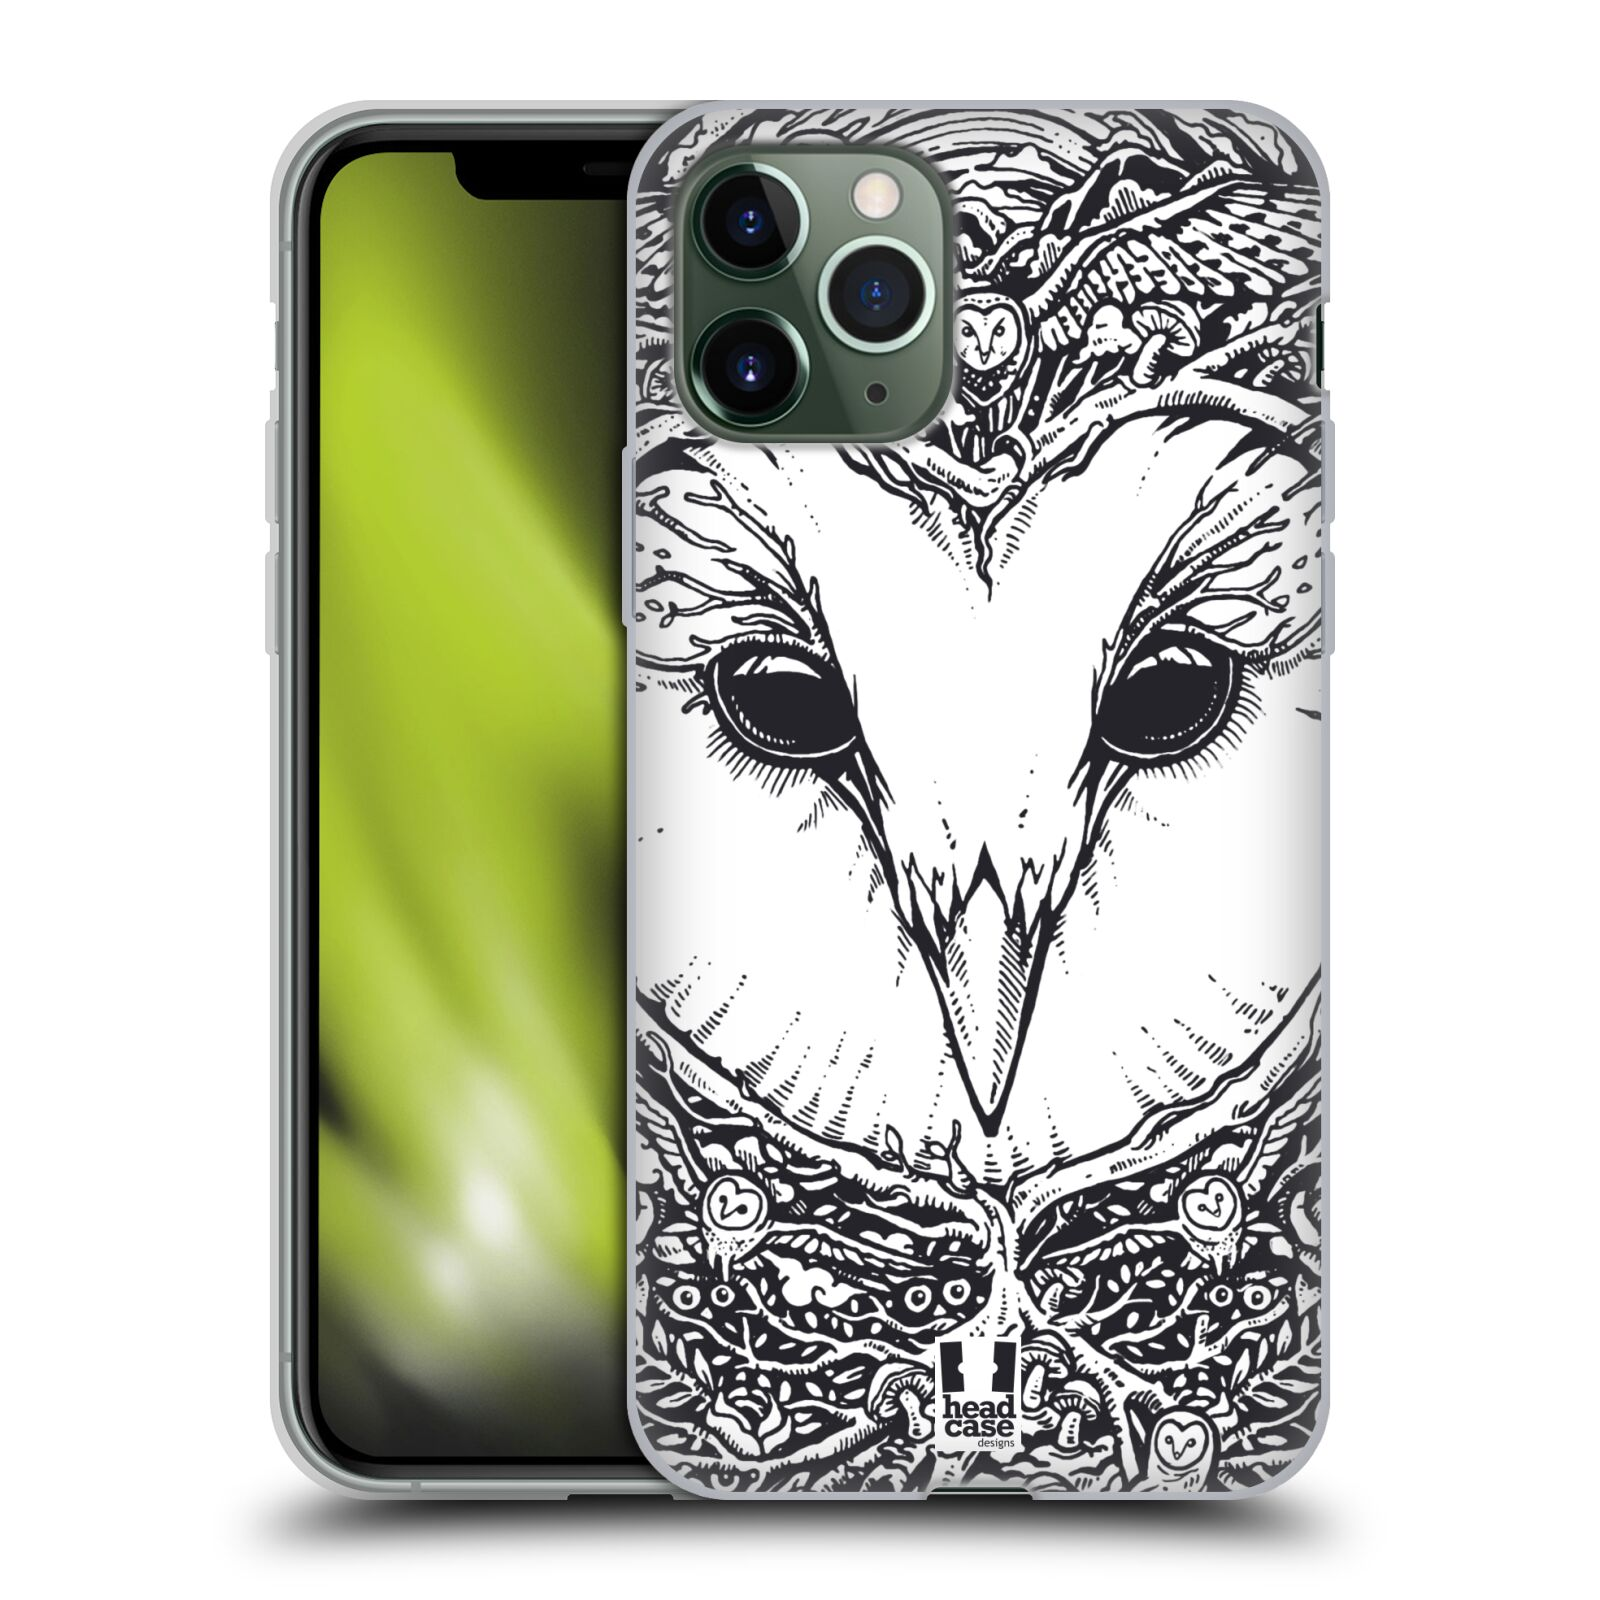 gucci iphone 8 plus case amazon - Silikonové pouzdro na mobil Apple iPhone 11 Pro - Head Case - DOODLE TVÁŘ SOVA